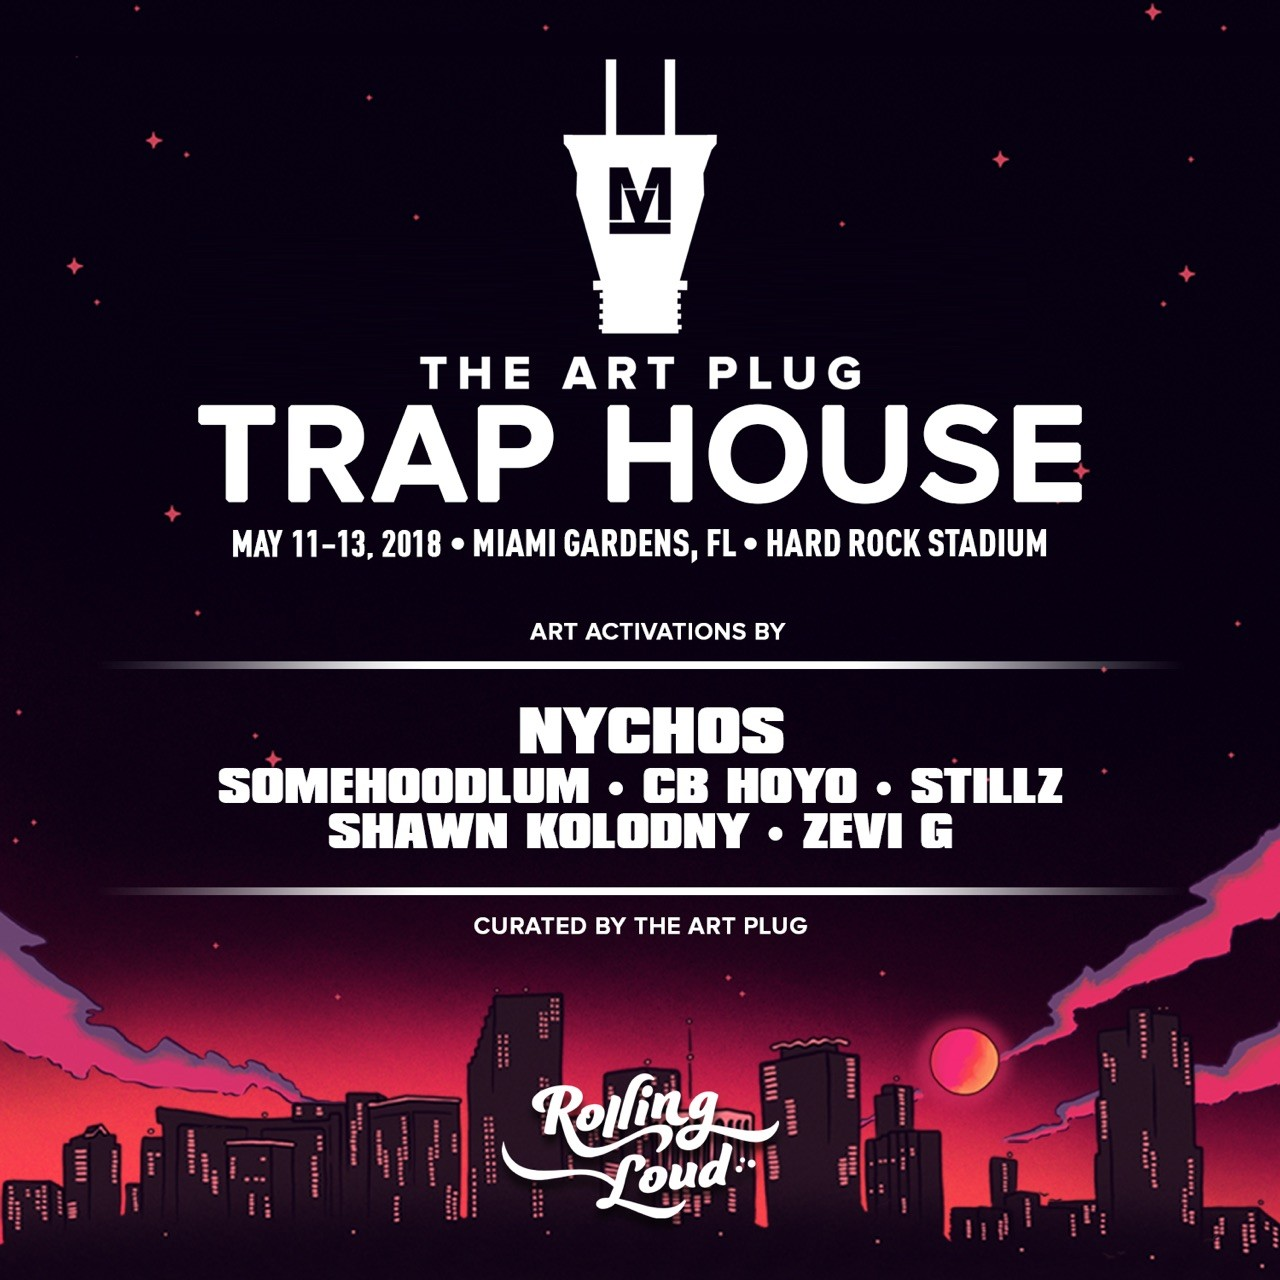 The Art Plug Trap House – Rolling Loud Miami 2018